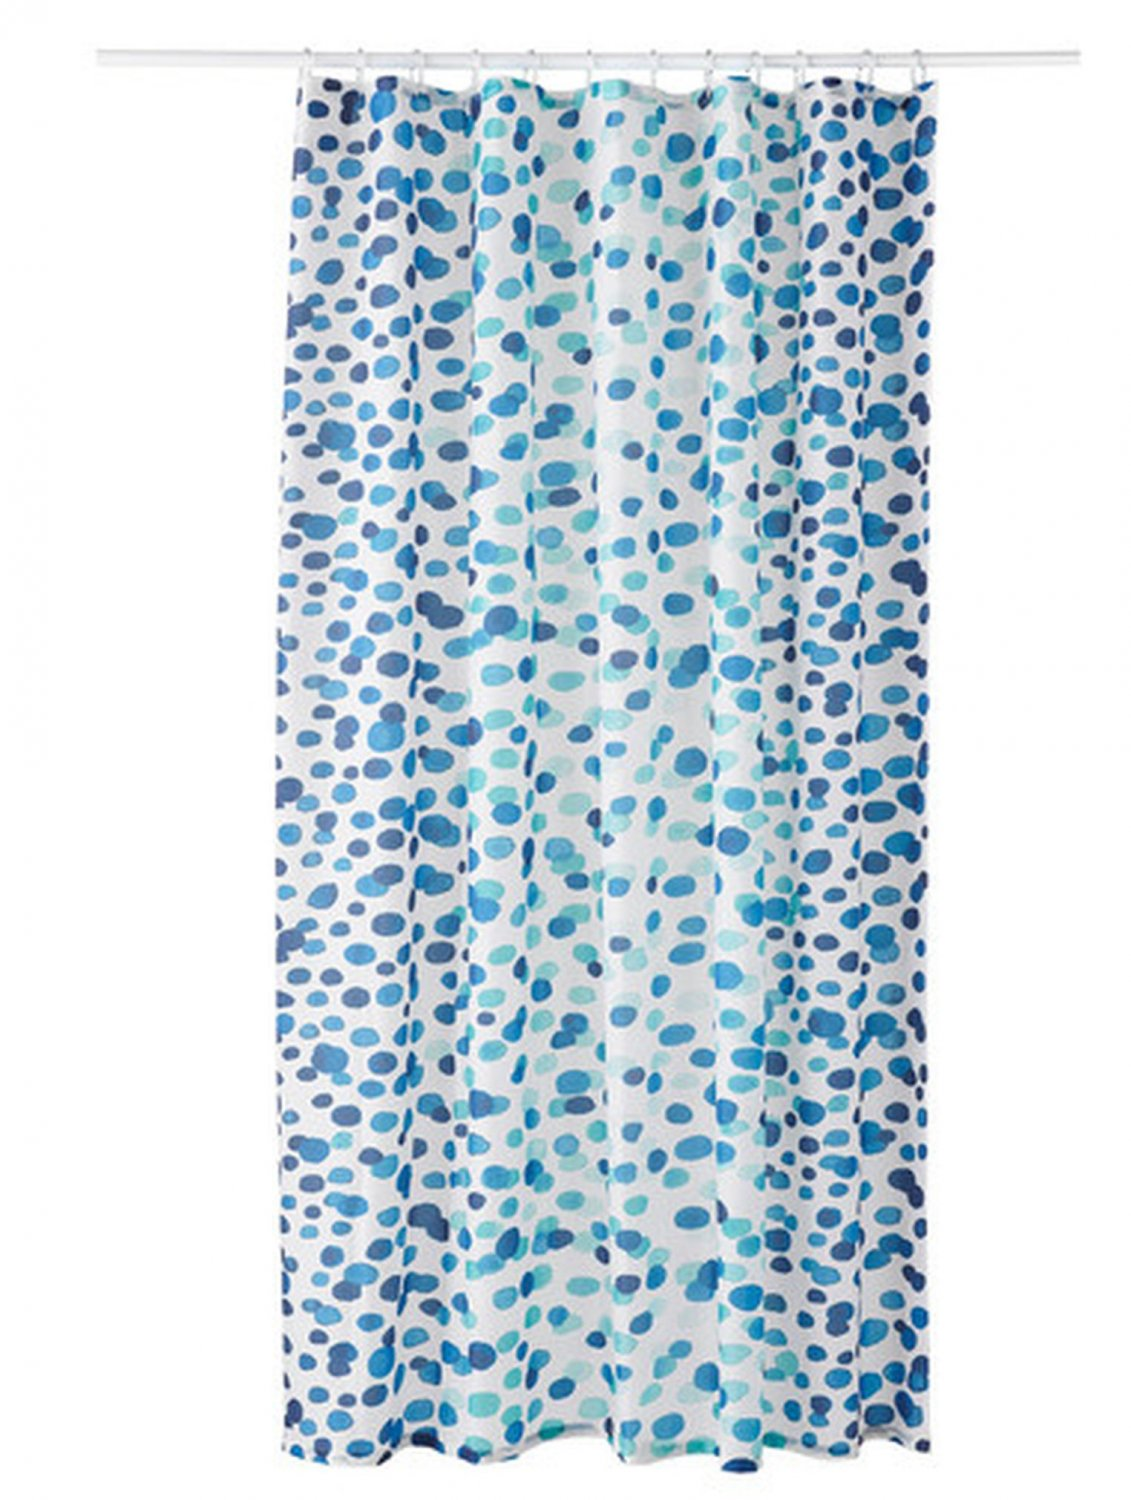 ikea skorren fabric shower curtain blue white turquoise. Black Bedroom Furniture Sets. Home Design Ideas